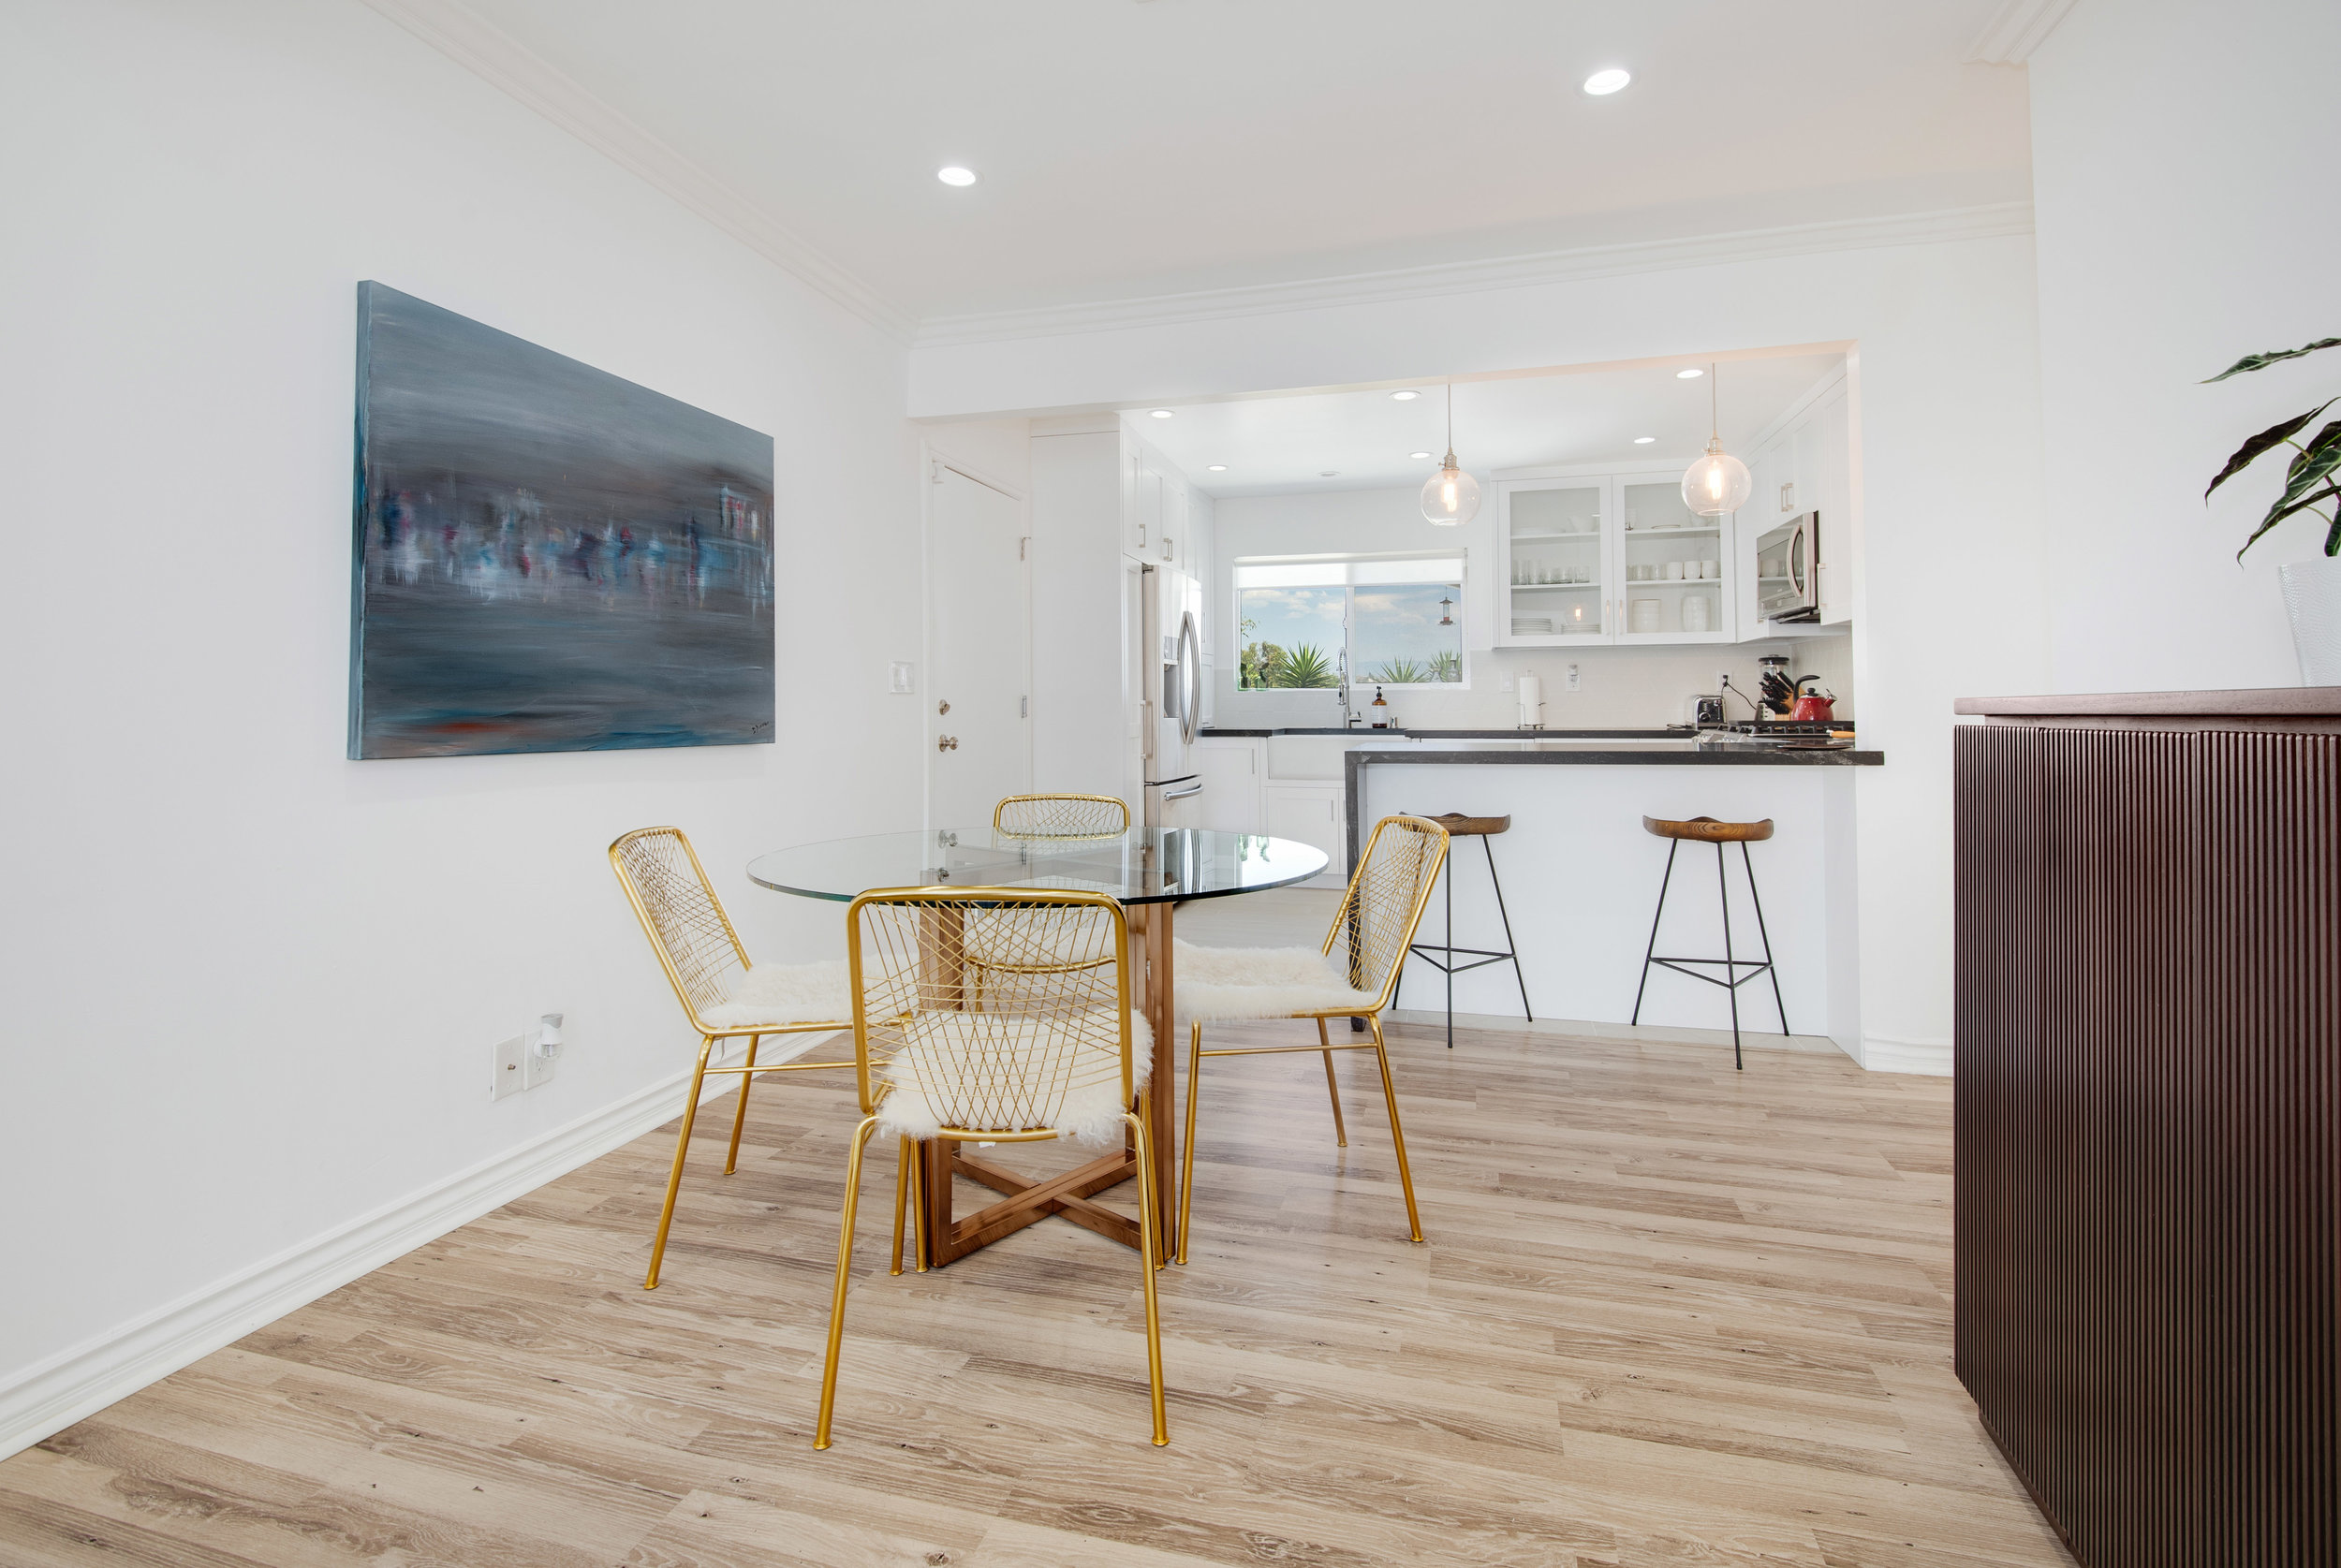 003 7612 Midfield Avenue Westchester Los Angeles For Sale Lease The Malibu Life Team Luxury Real Estate.jpg